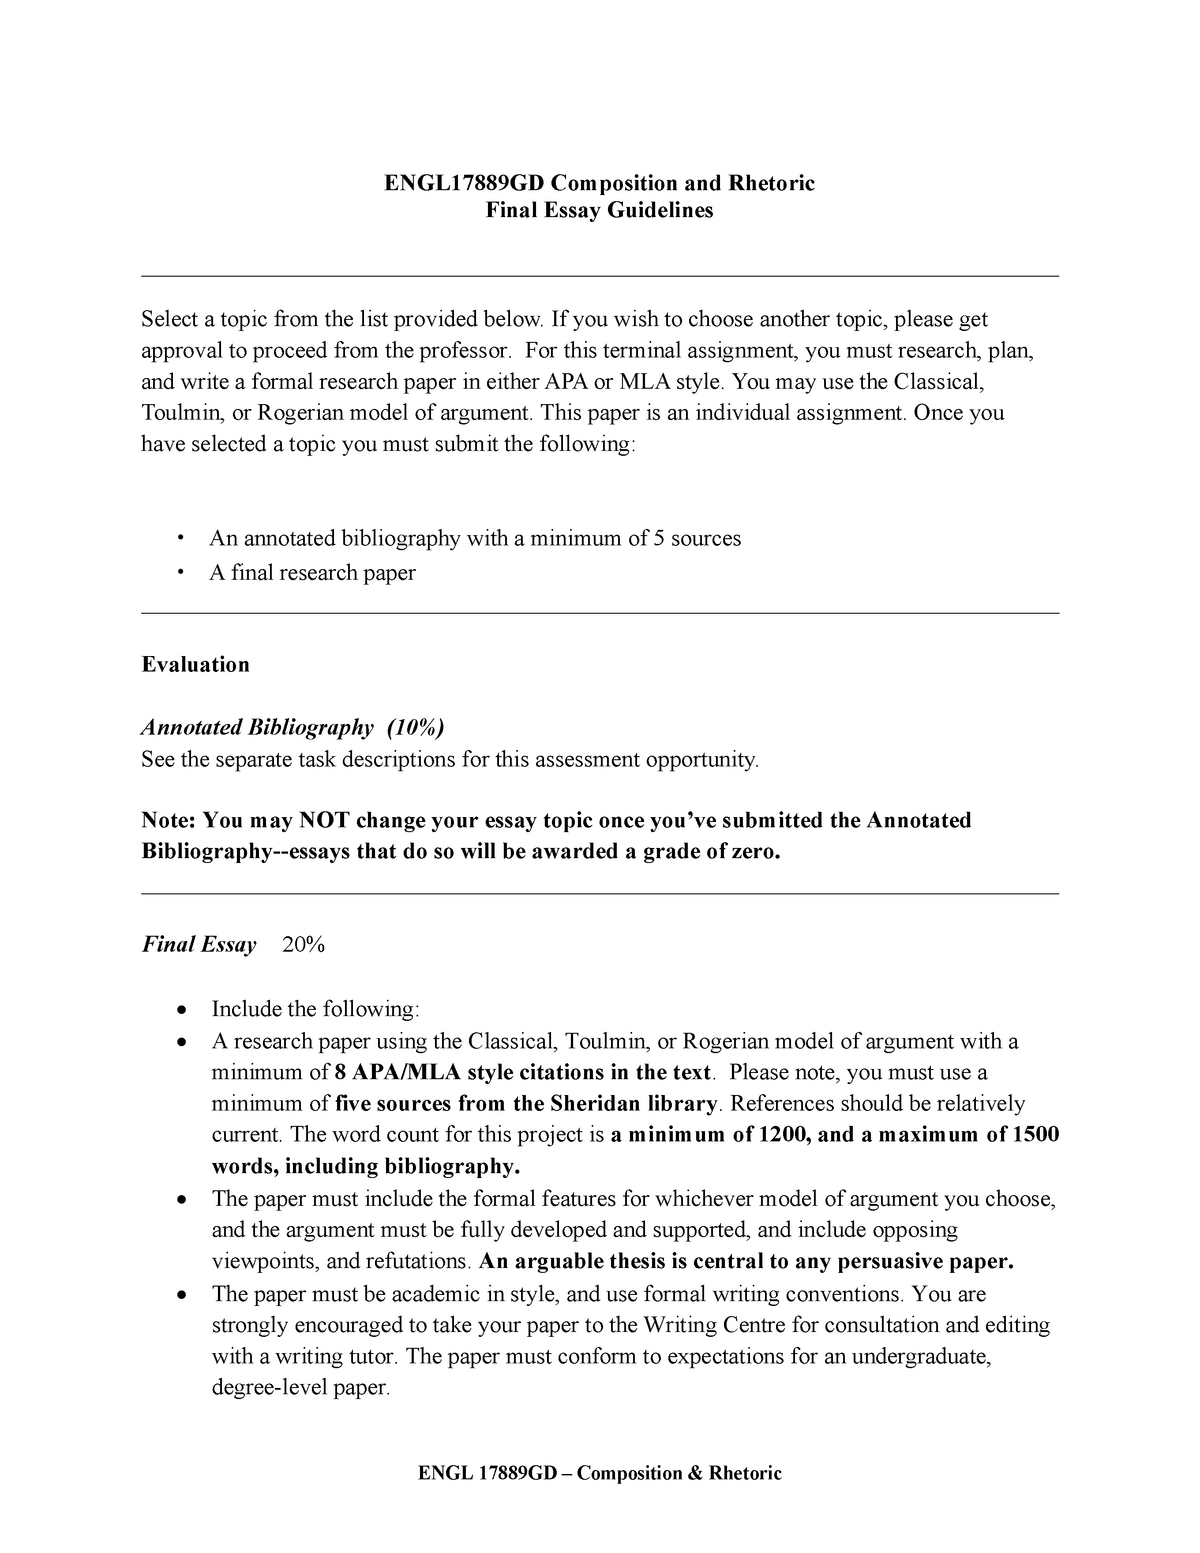 Persuasive Essay Samples For High School  Short English Essays also Thesis For Argumentative Essay Engl Gd  Final Argumentative Essay  Enggd  Studocu Computer Science Essay Topics